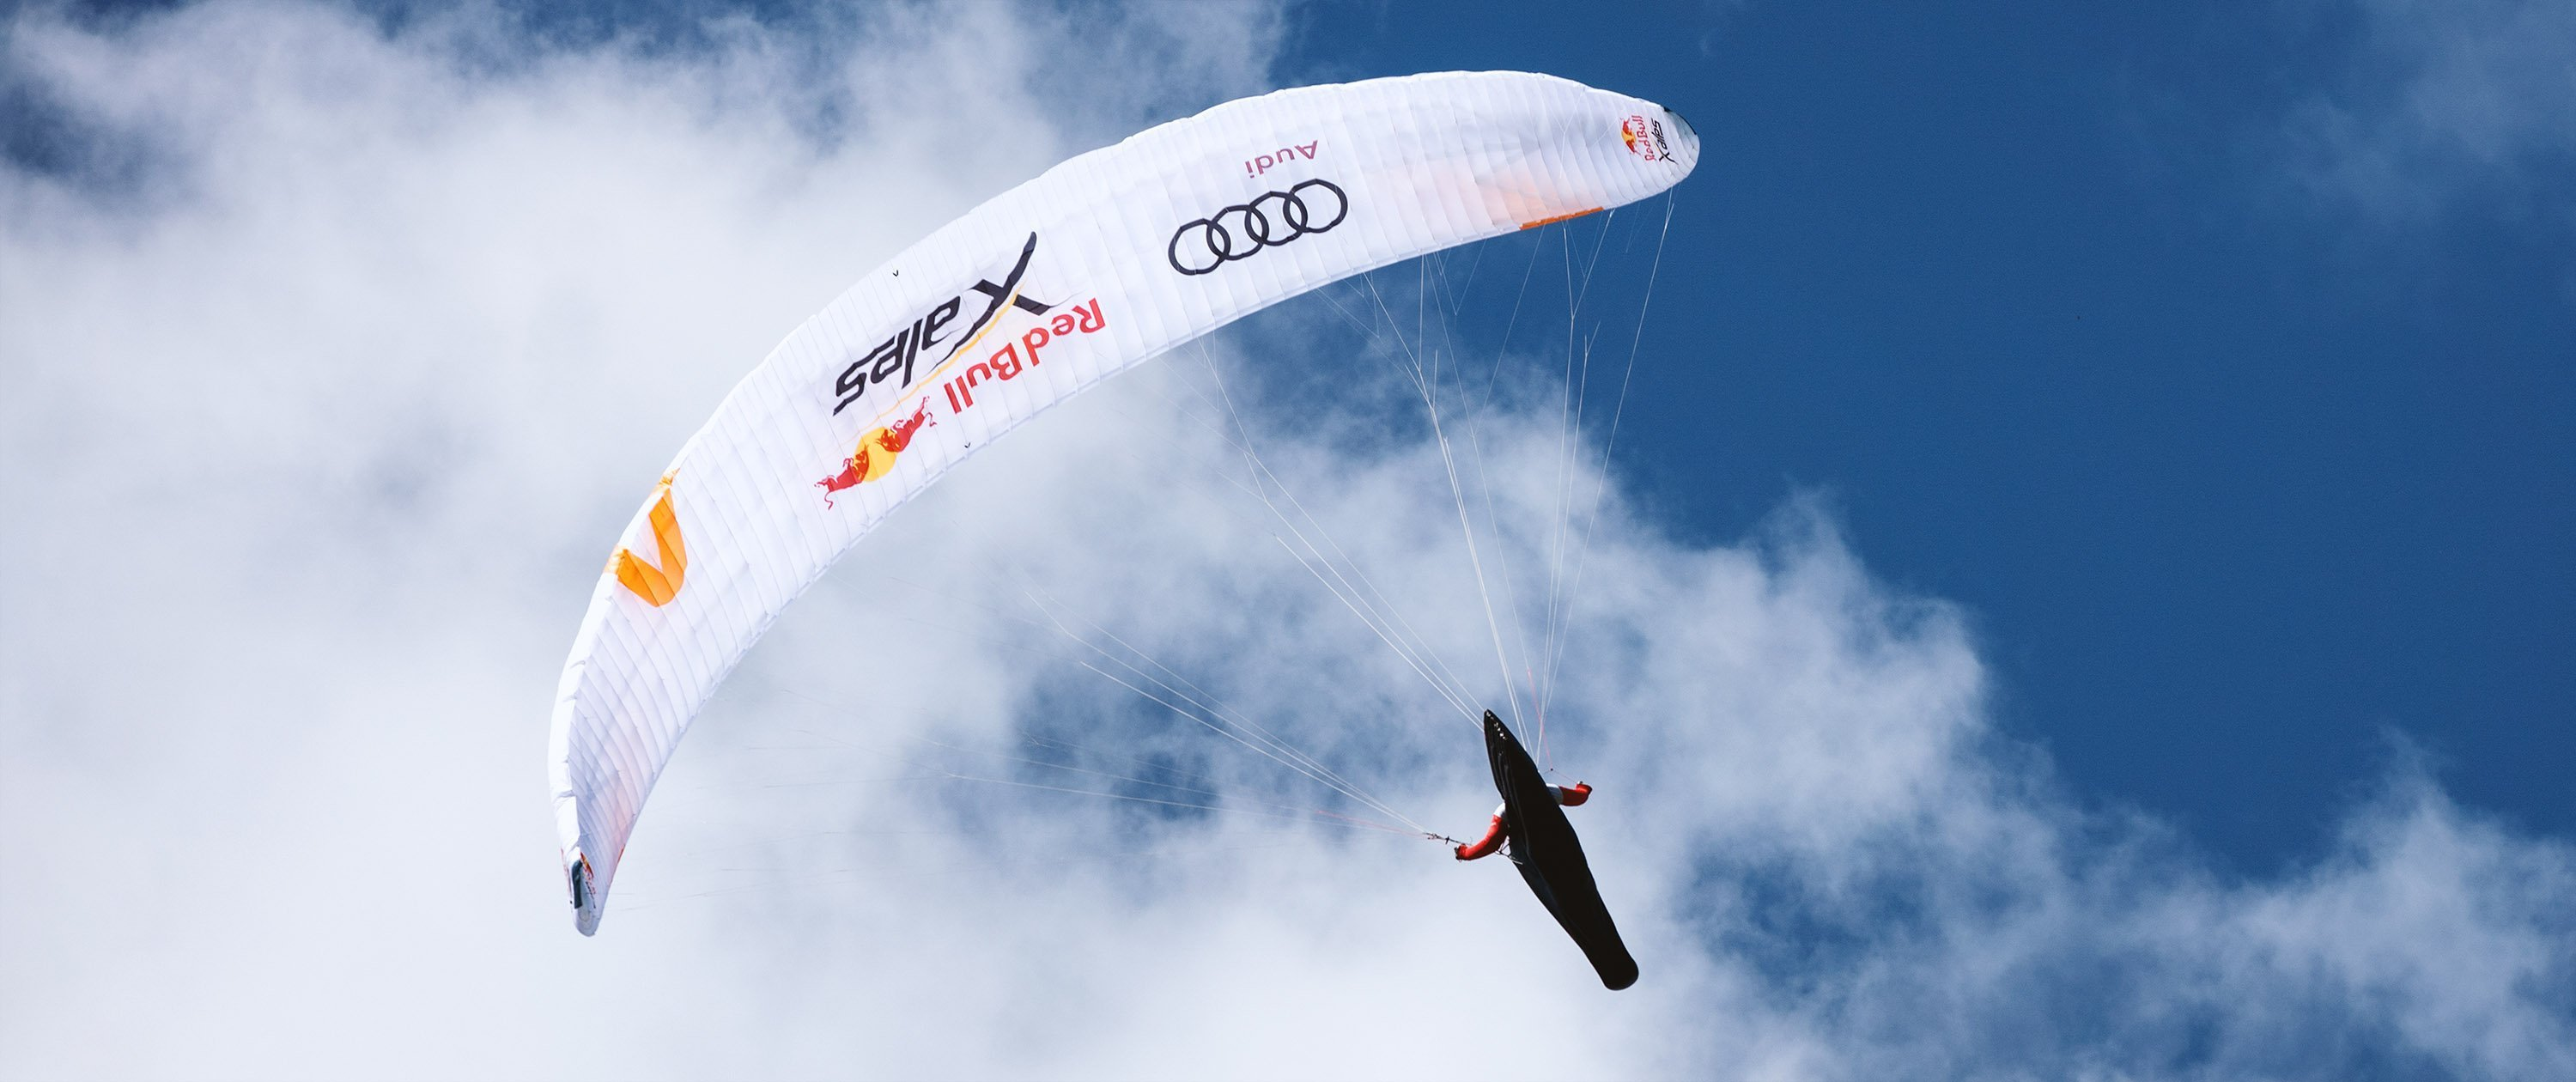 Red Bull X-Alps 2019 preparations in Davos. Adrian Keller (Team Switzerland 3) with his Skywalk X-Alps 4 paraglider.